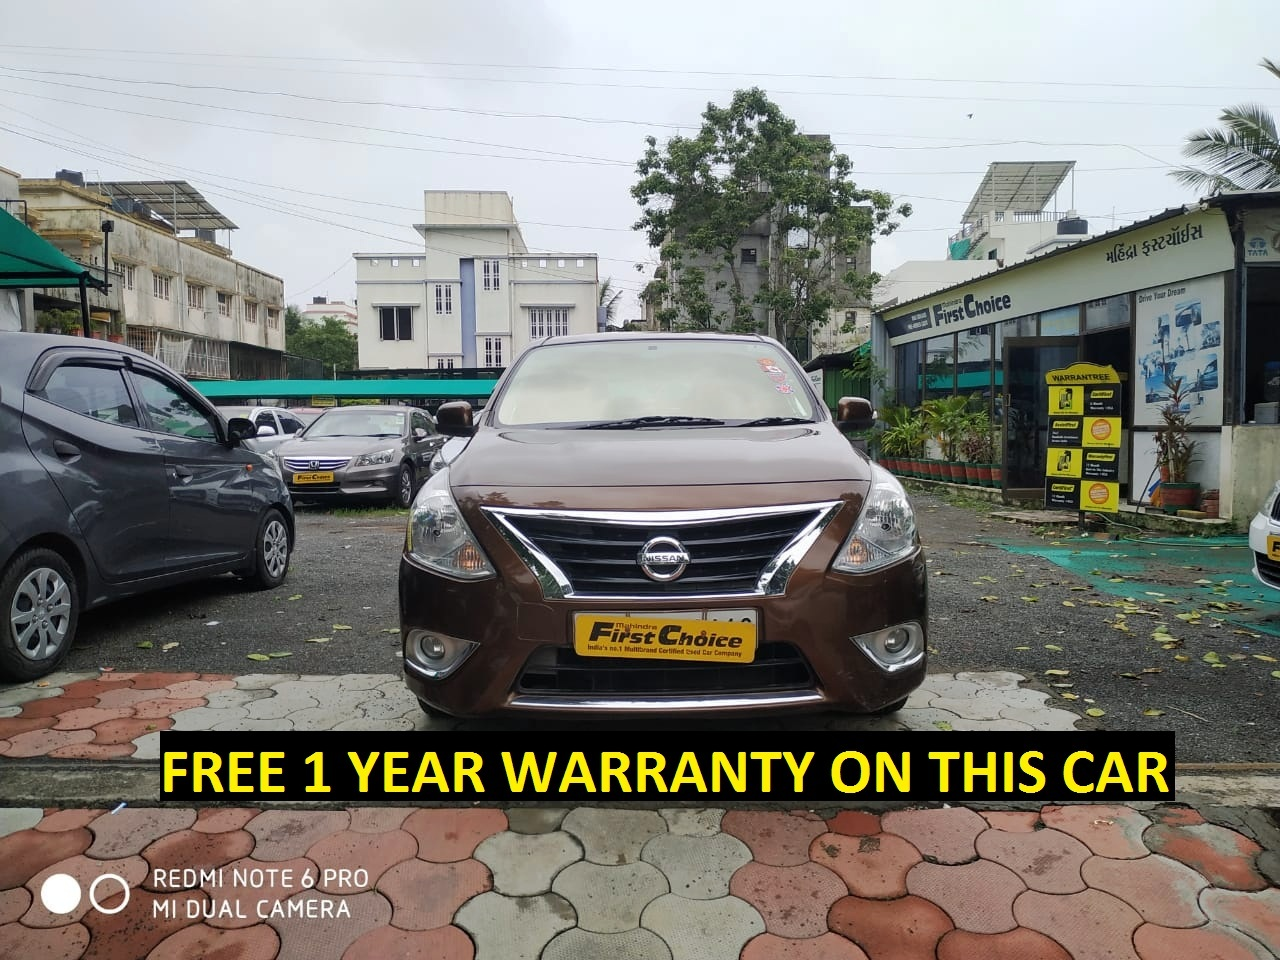 Used Cars In Surat - Second Hand Cars For Sale - Used Cars - MFCWL